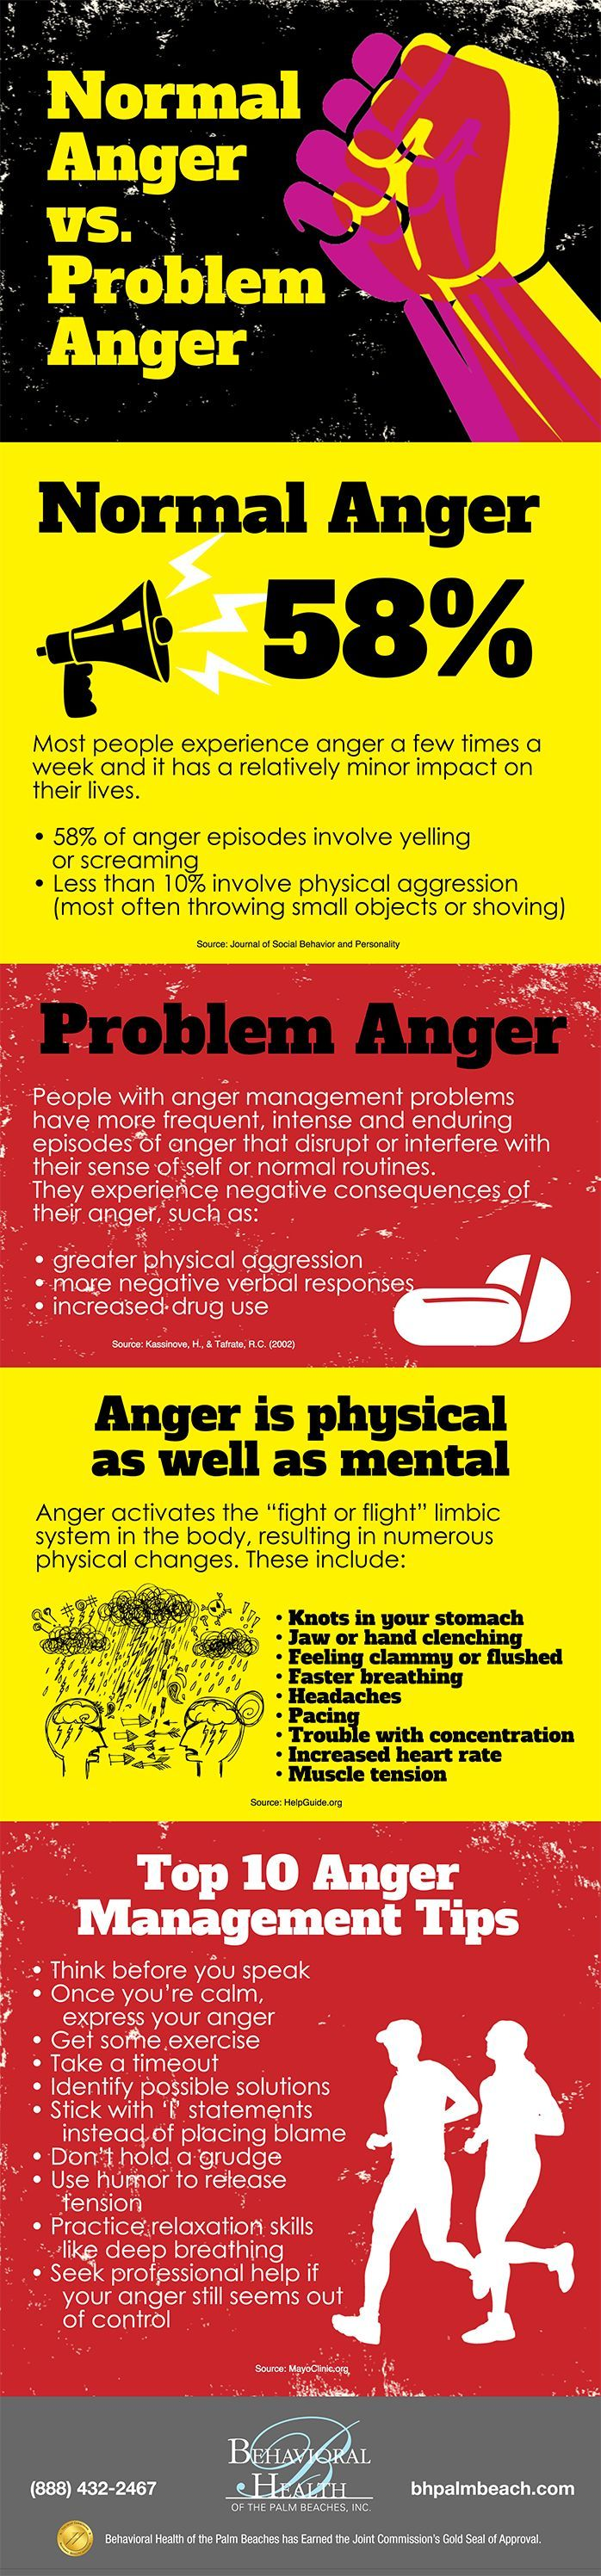 Chemical dependency and anger management dissertation